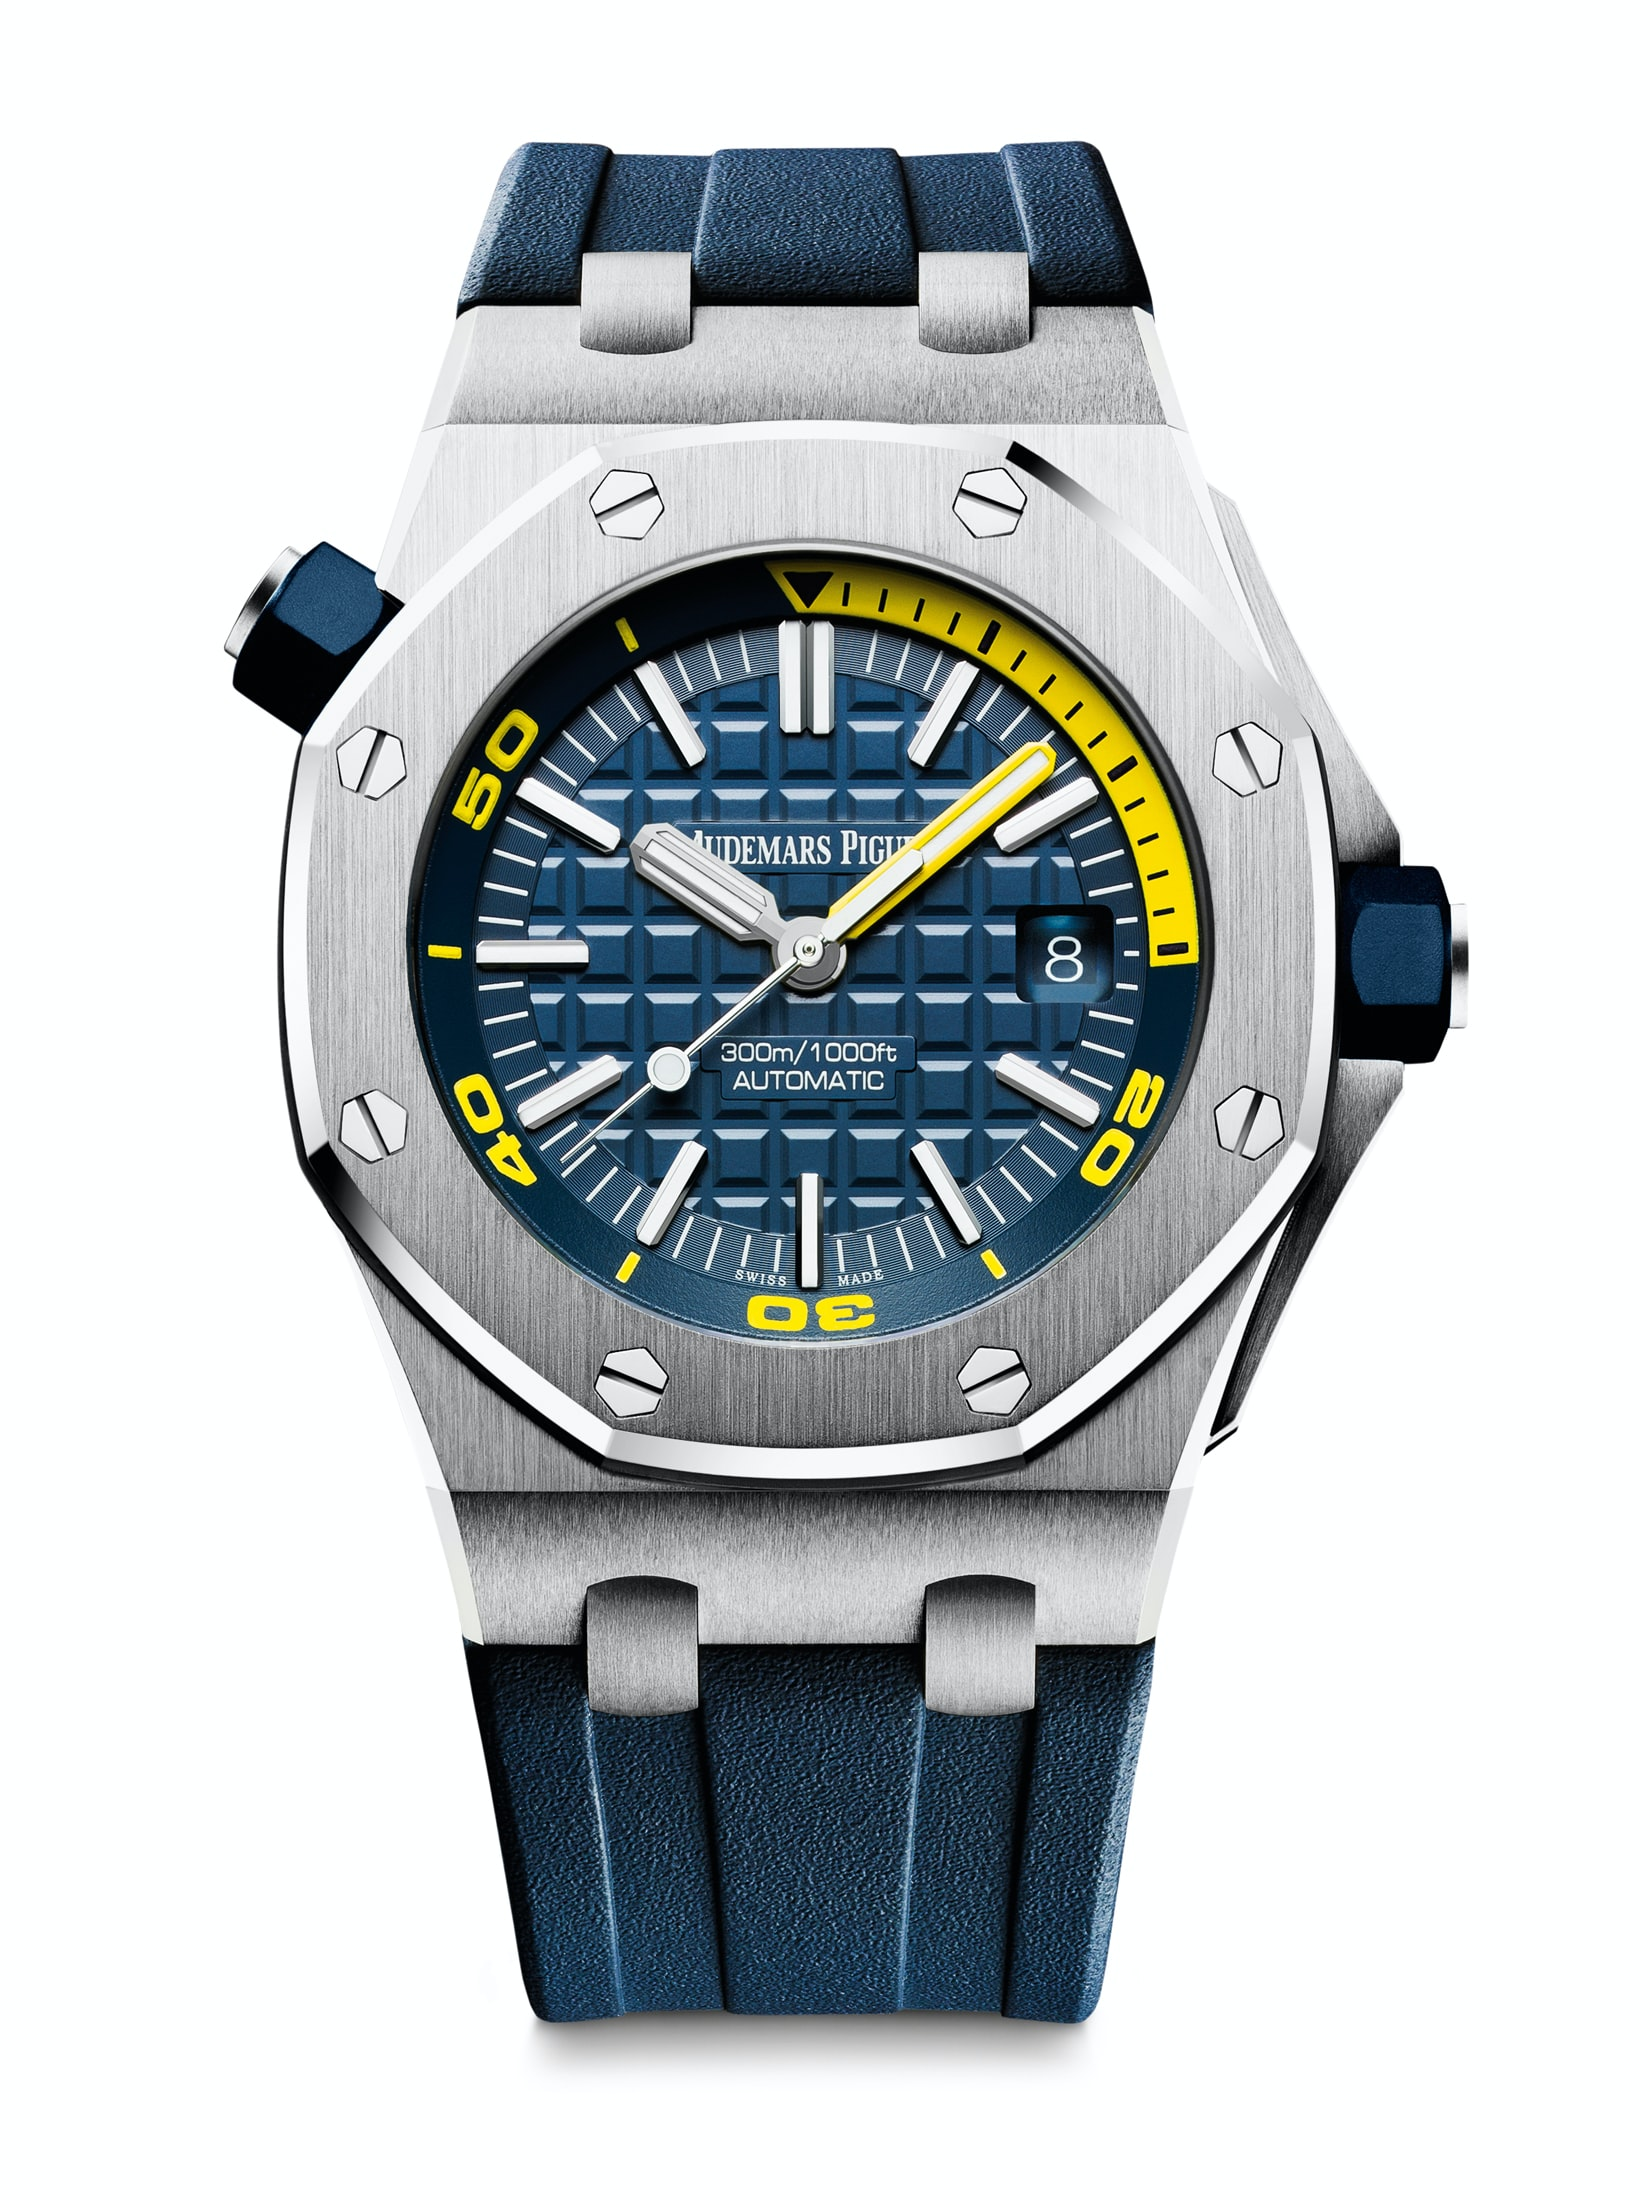 Introducing: The Audemars Piguet Royal Oak Offshore Diver In A Suite Of New (Bright) Colors Introducing: The Audemars Piguet Royal Oak Offshore Diver In A Suite Of New (Bright) Colors diver 03